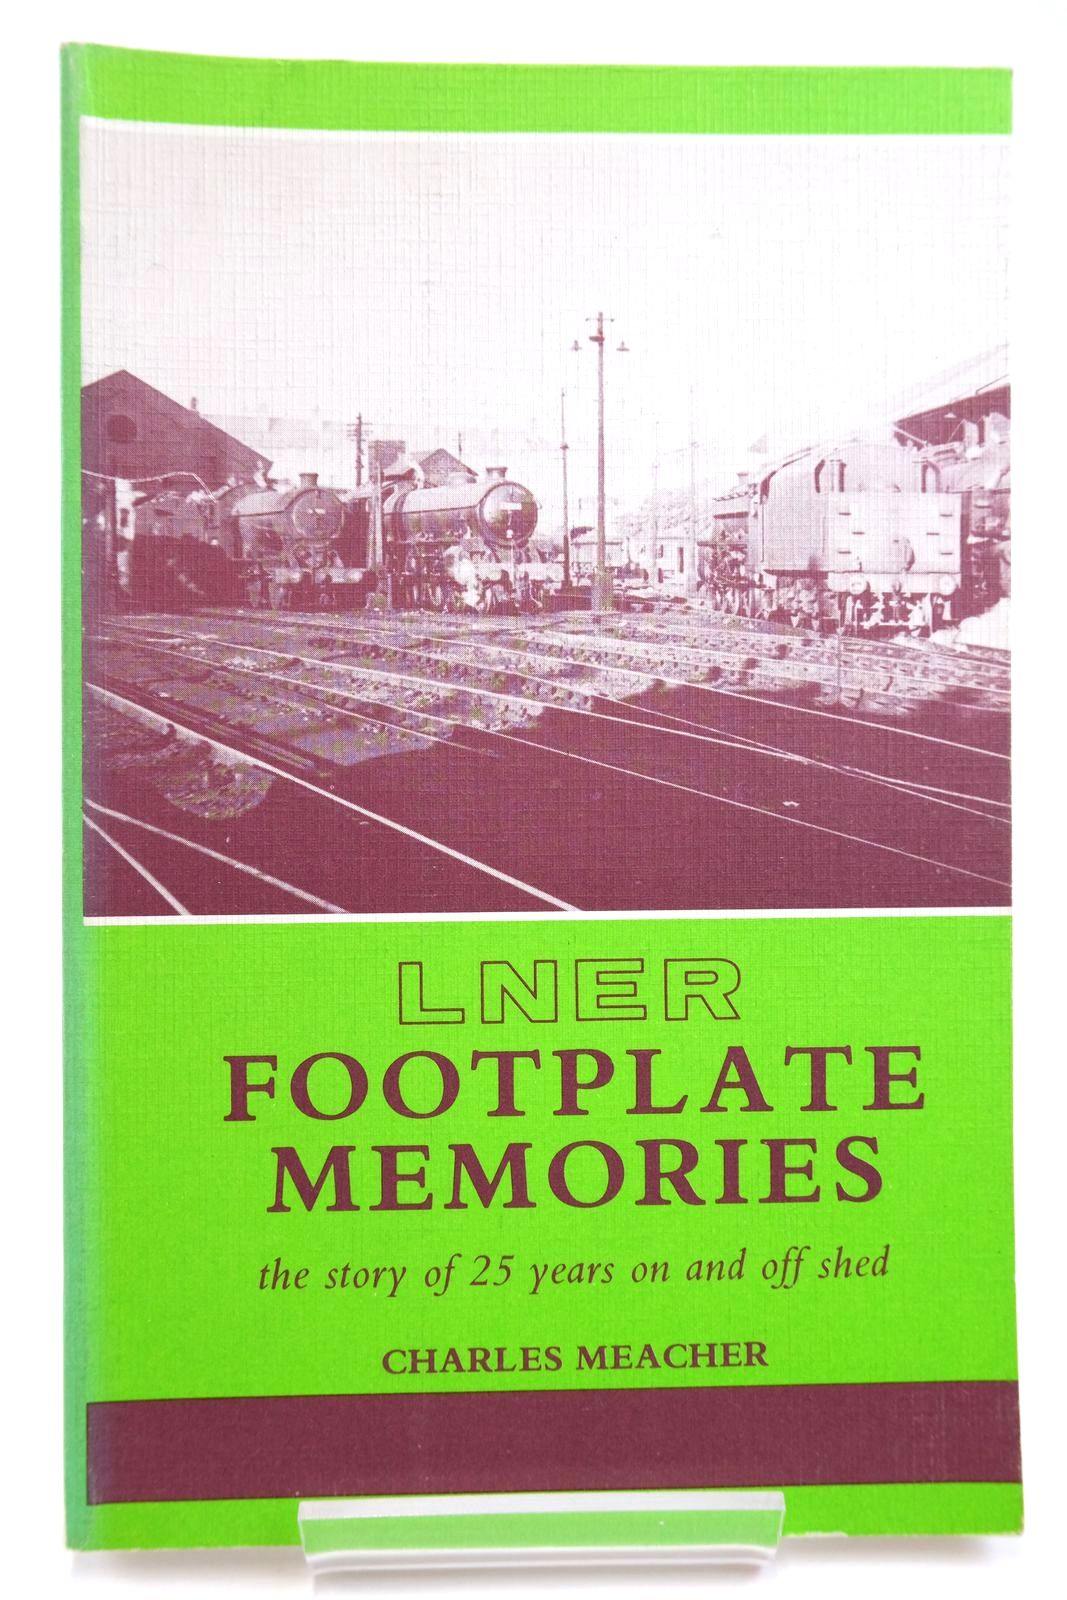 Photo of LNER FOOTPLATE MEMORIES written by Meacher, Charles published by D. Bradford Barton (STOCK CODE: 2133719)  for sale by Stella & Rose's Books